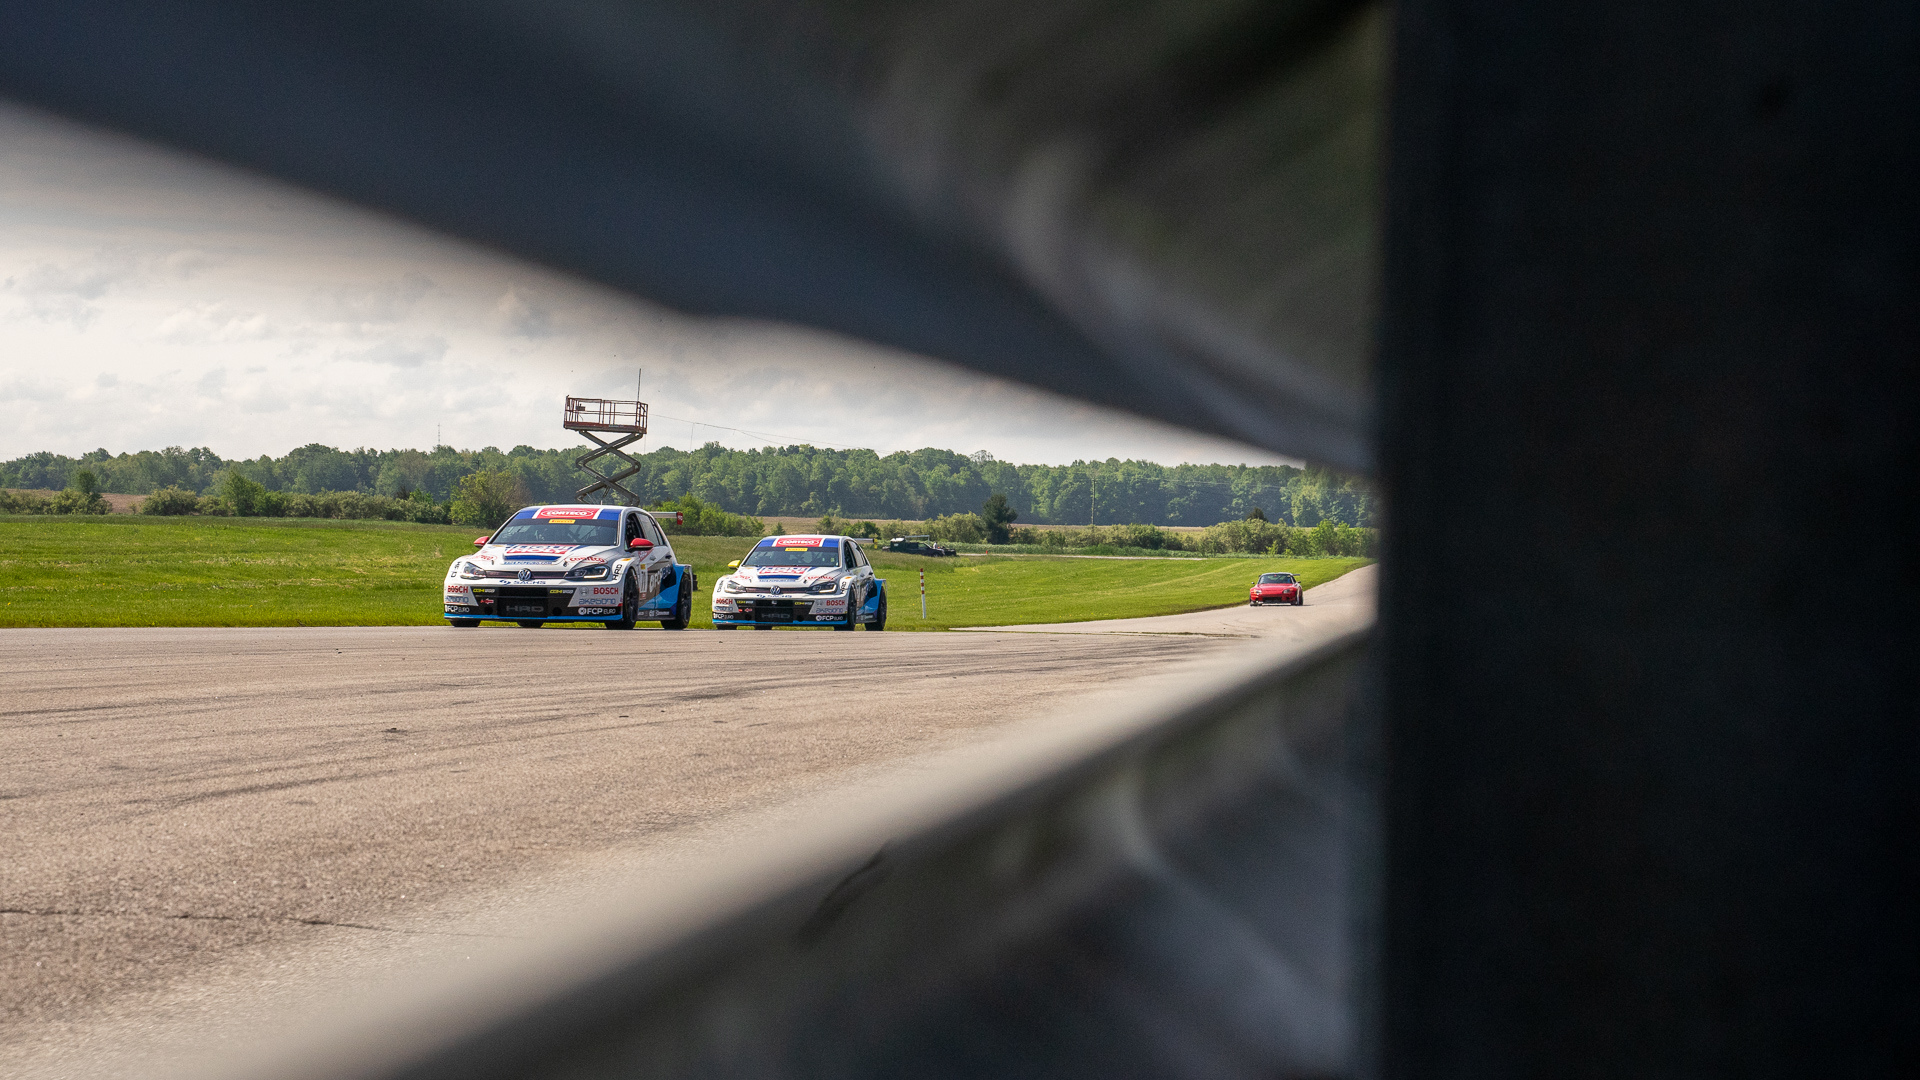 GRIDLIFE MidWest 2019 Sunday Update: Weekend By The Numbers